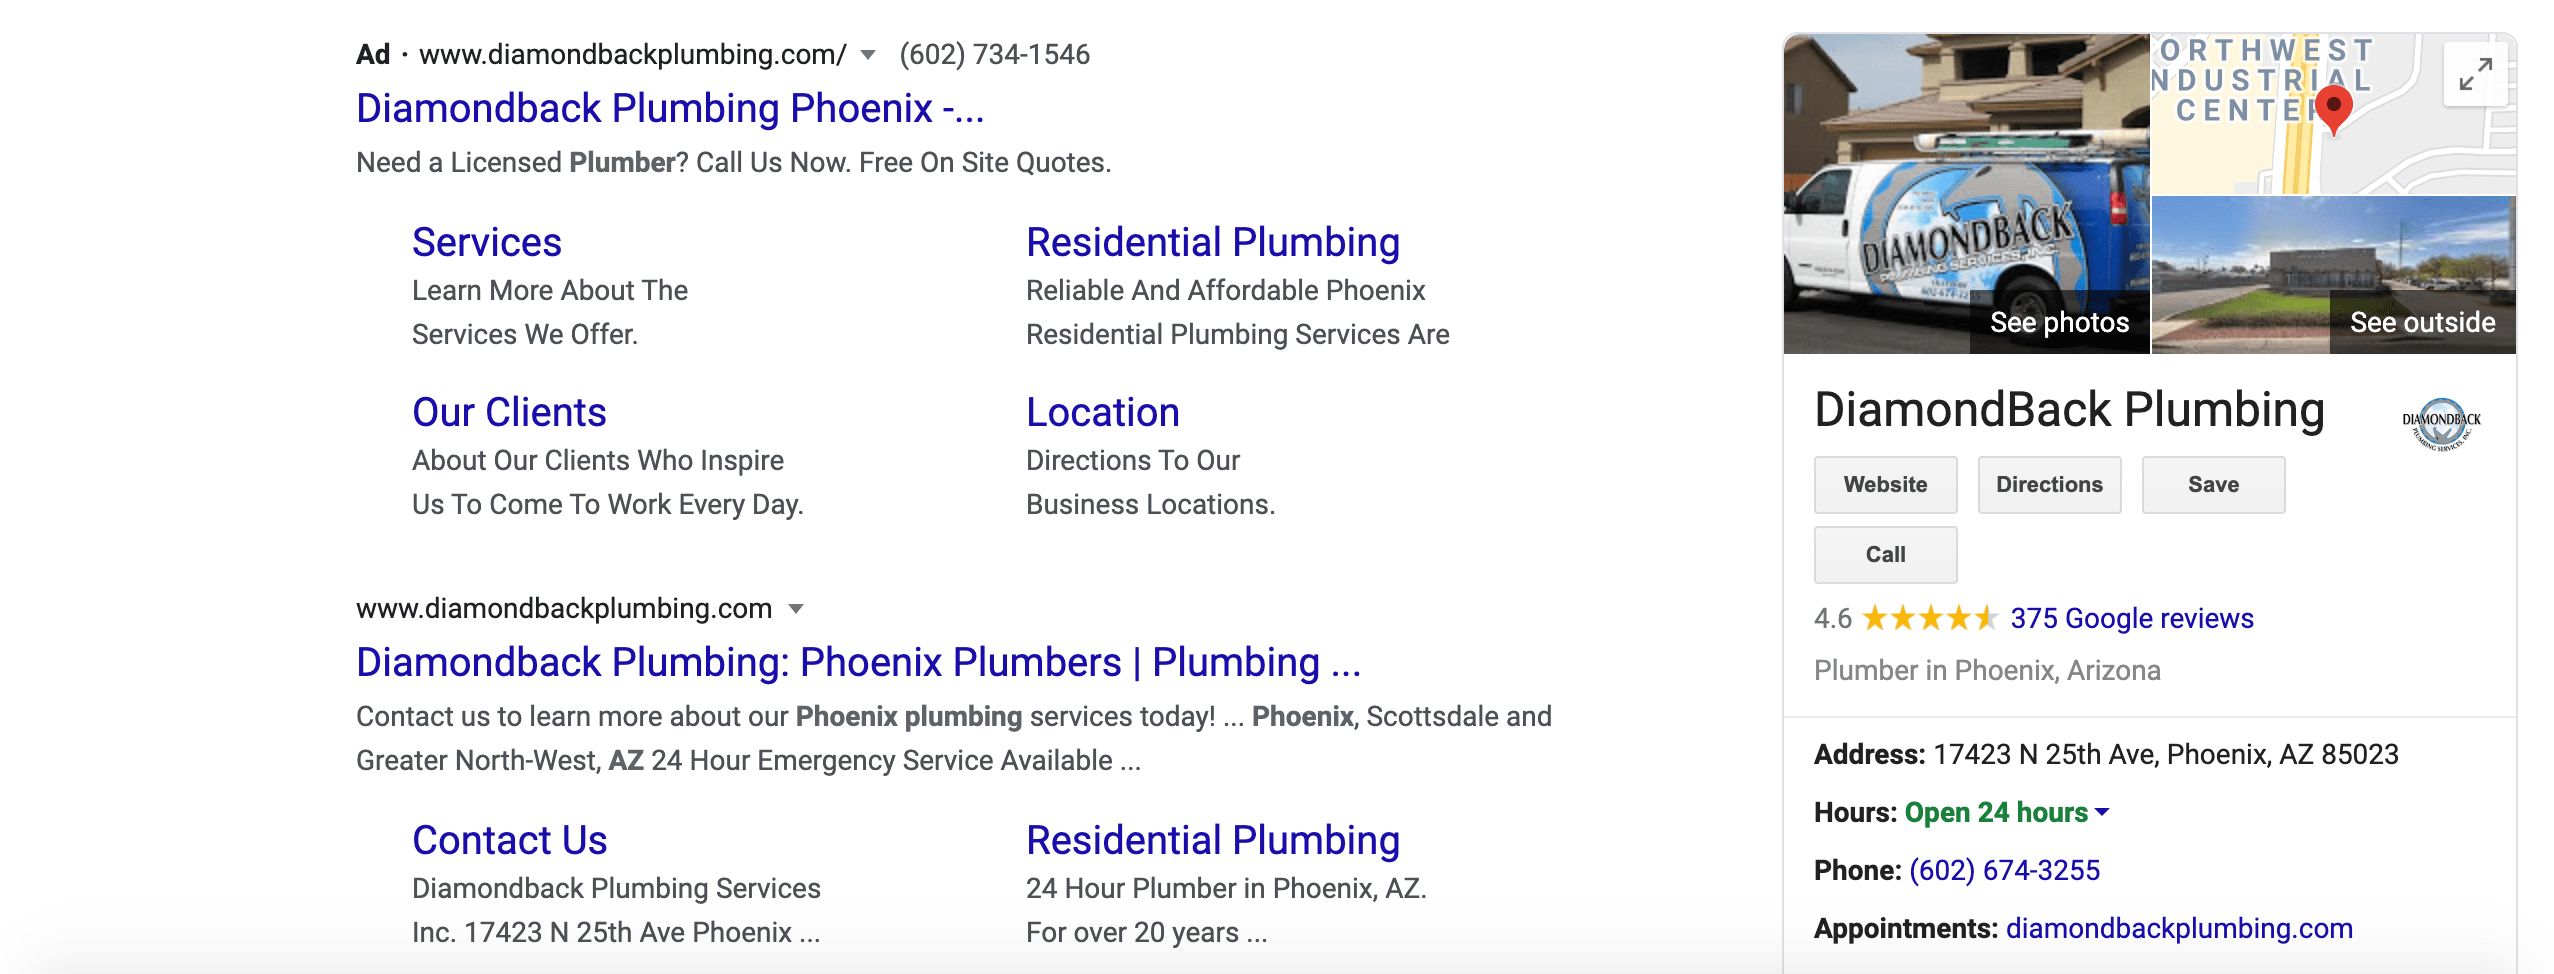 An example of a Google My Business Listing displaying for a branded search.